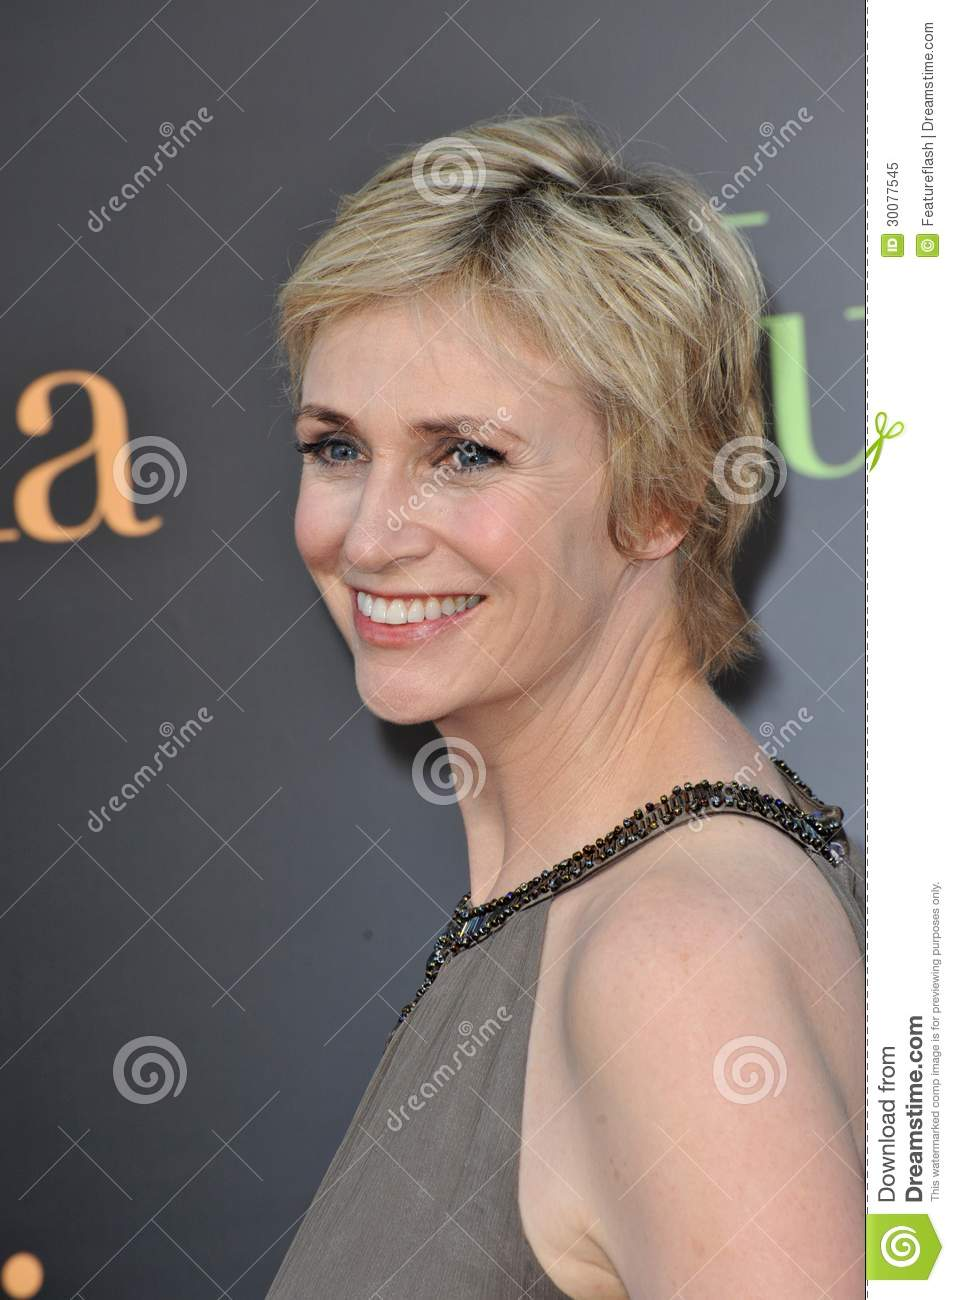 Jane Lynch Immagine Editoriale - jane-lynch-al-prima-di-los-angeles-del-suo-nuovo-film-%25E2%2580%259Cjulie-amp-julia%25E2%2580%259E-al-teatro-del-villaggio-di-mann-westwood-luglio-los-30077545